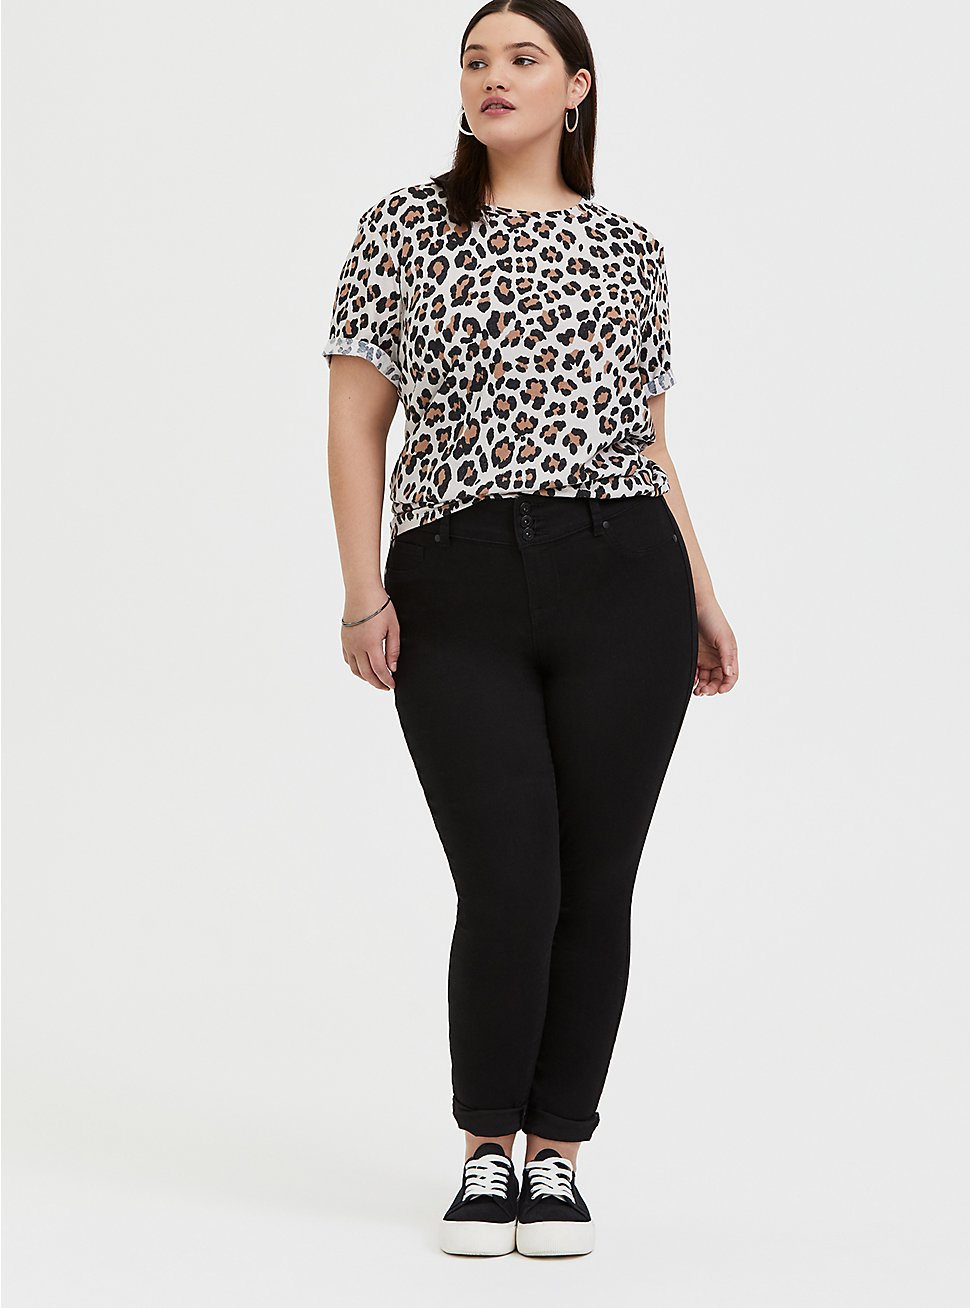 Plus Size Relaxed Fit Crew Tee - Triblend Jersey Leopard, LEOPARD-BROWN, hi-res